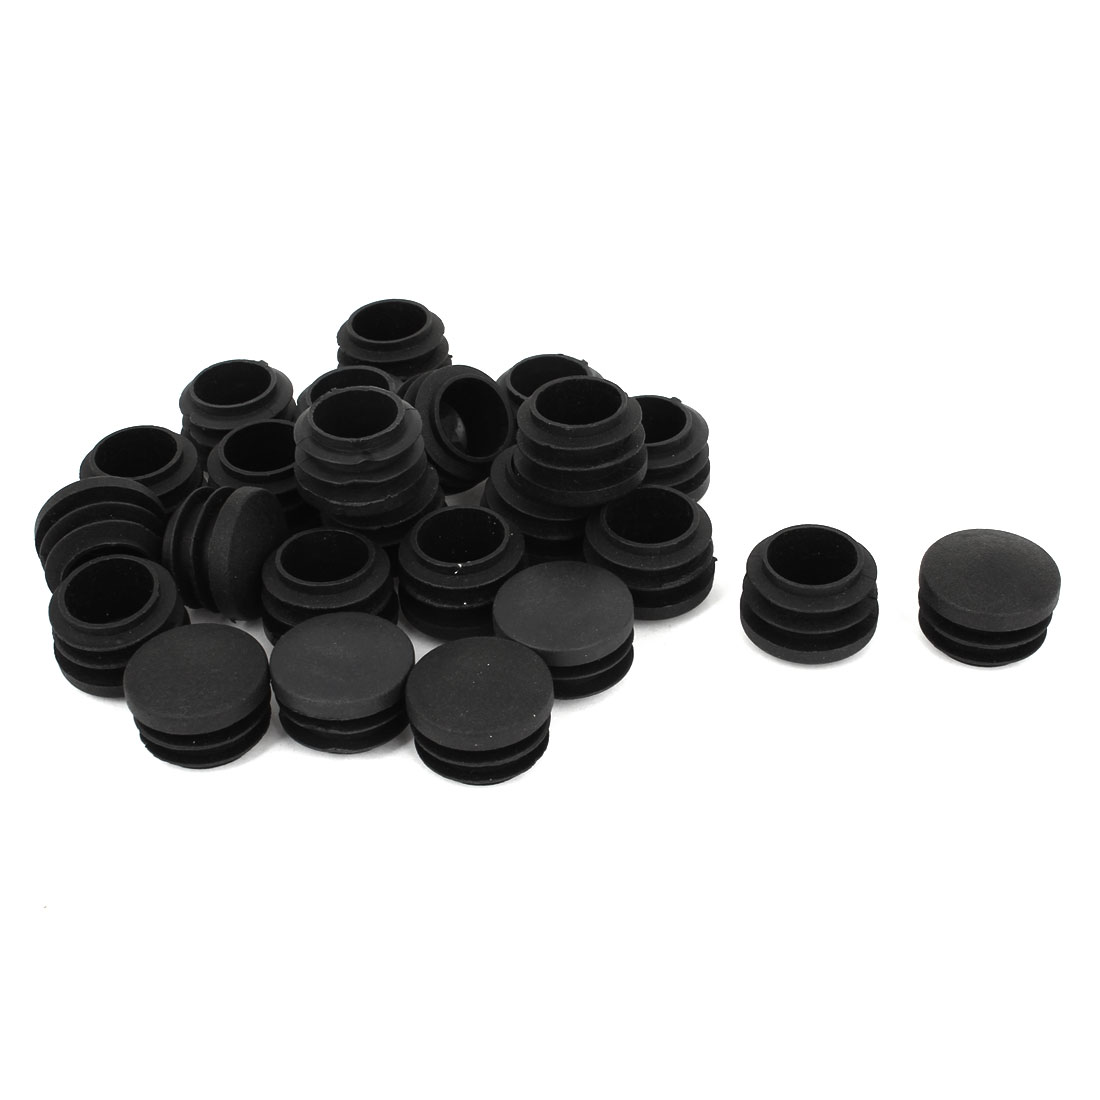 24 Pcs Plastic 28mm Thread Dia Tubing Tube Insert Blanking End Caps